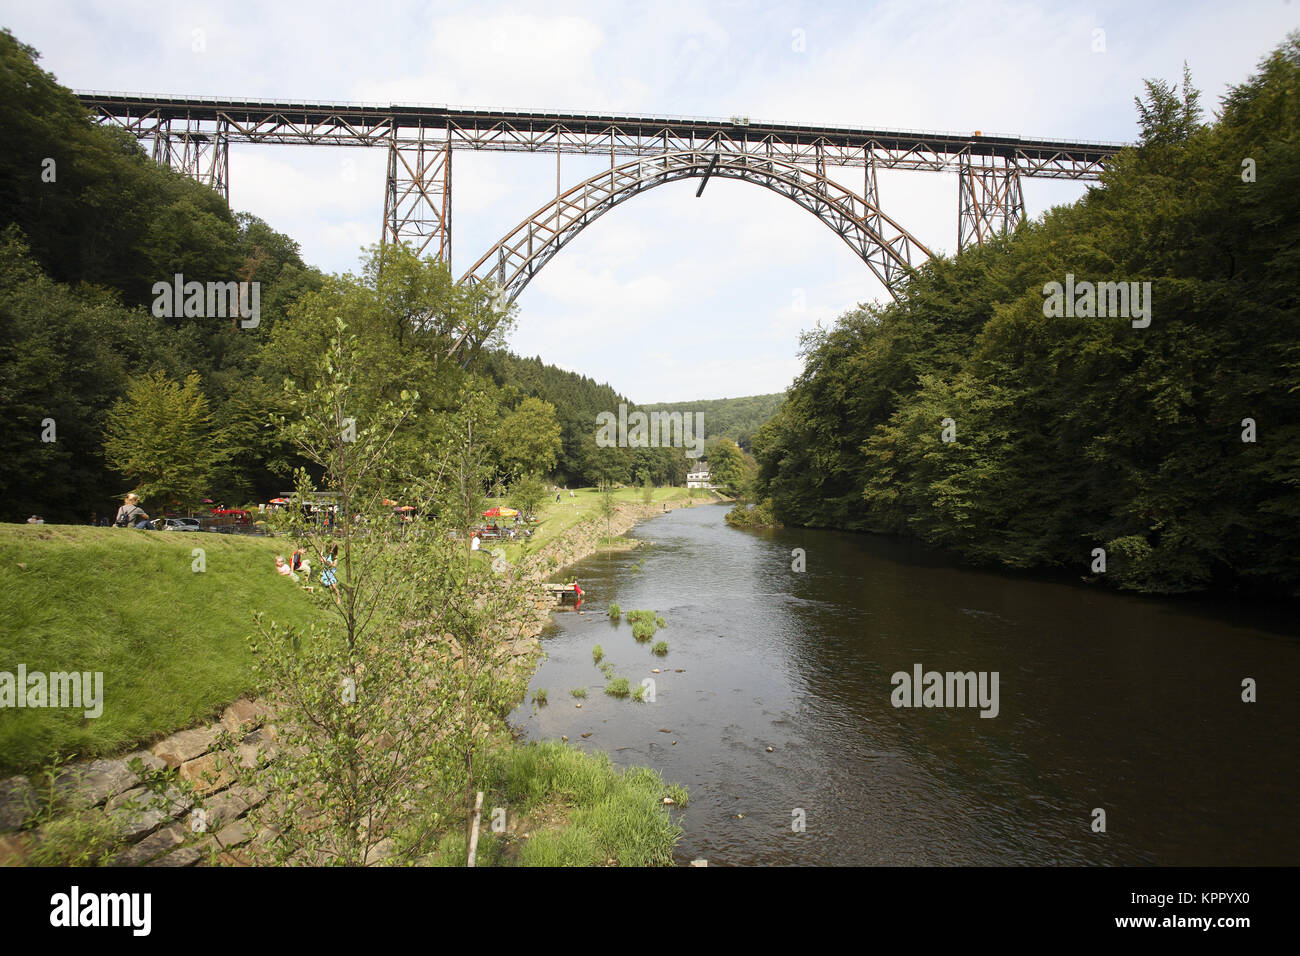 Germany, the Bergisches Land region, the Muengstener bridge near Solingen.  Deutschland, Bergisches Land, die Muengstener - Stock Image